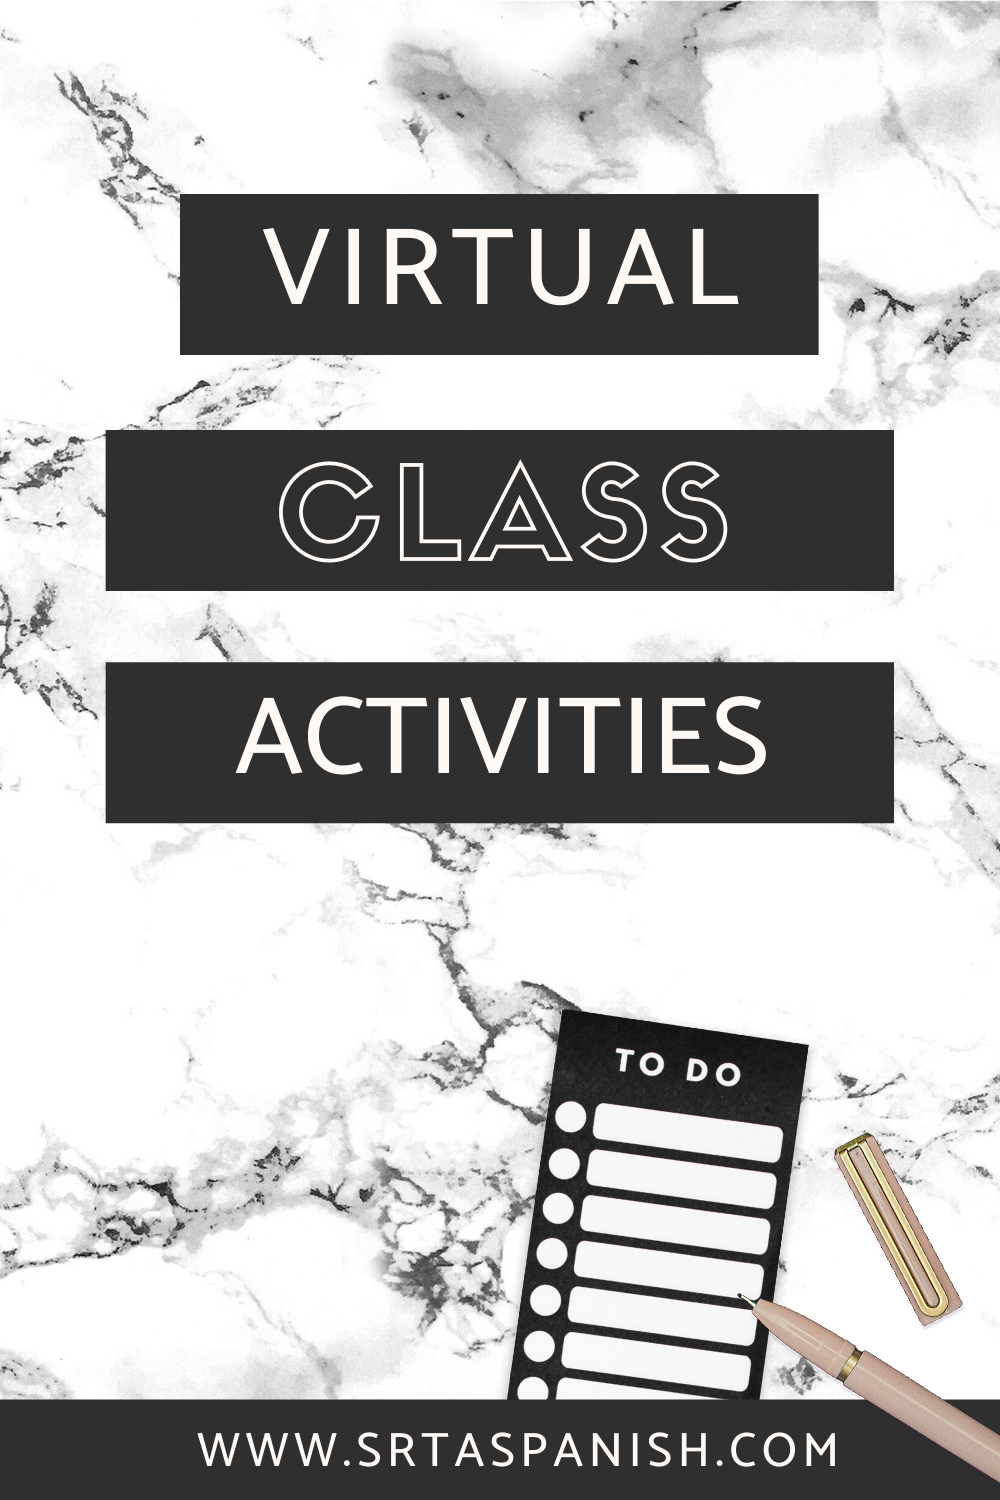 Virtual Class Meeting Games For Language Learners Srta Spanish In 2020 High School Spanish Spanish Lesson Plans Virtual Class